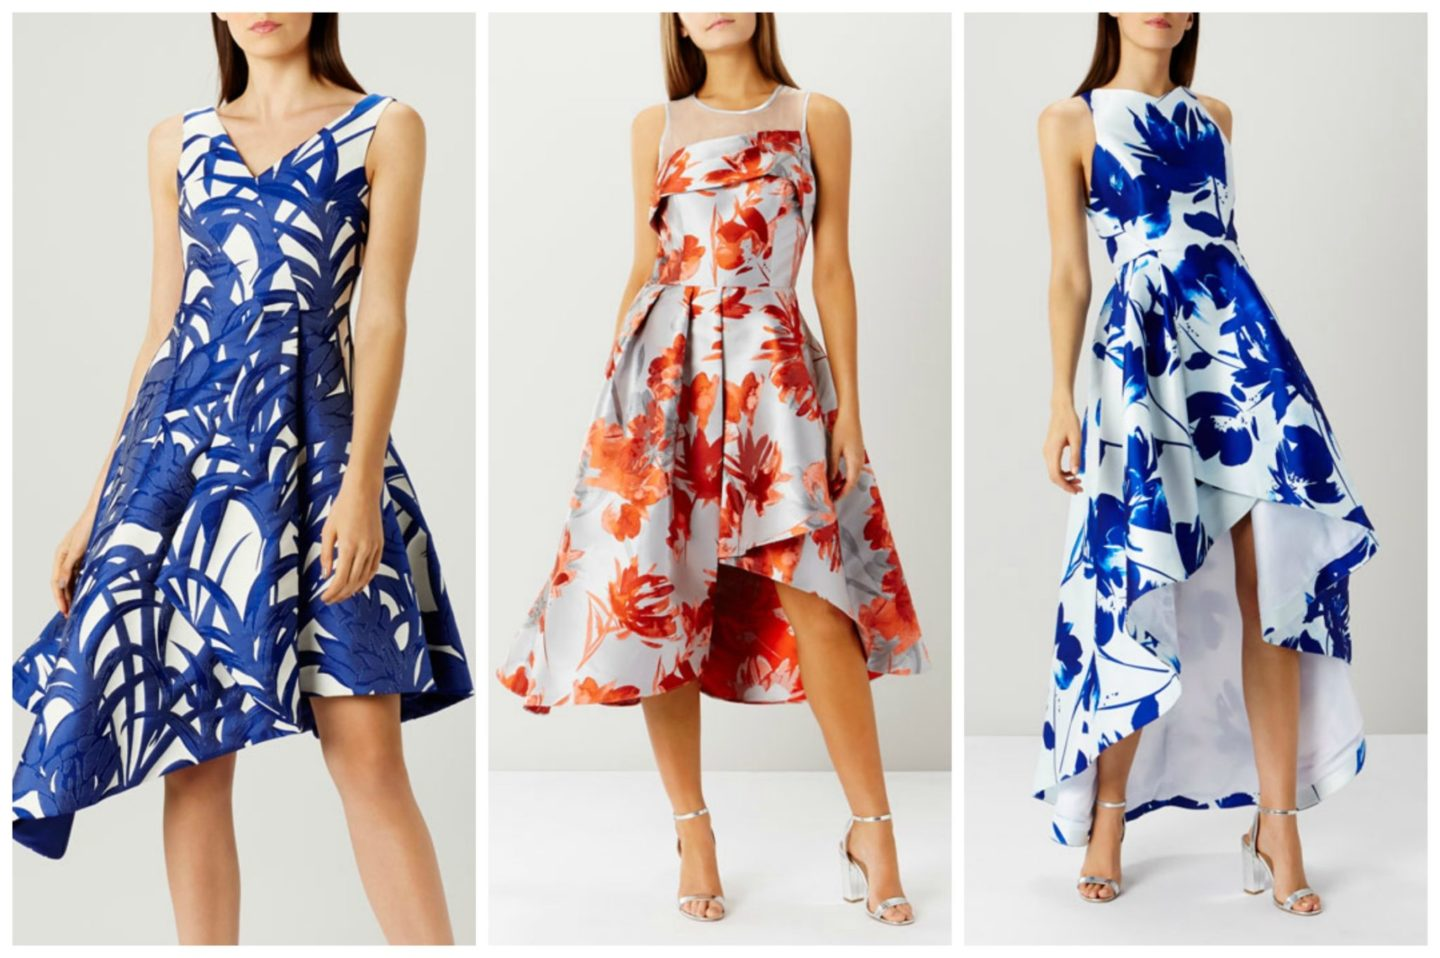 Statement Coast Dresses for the Races